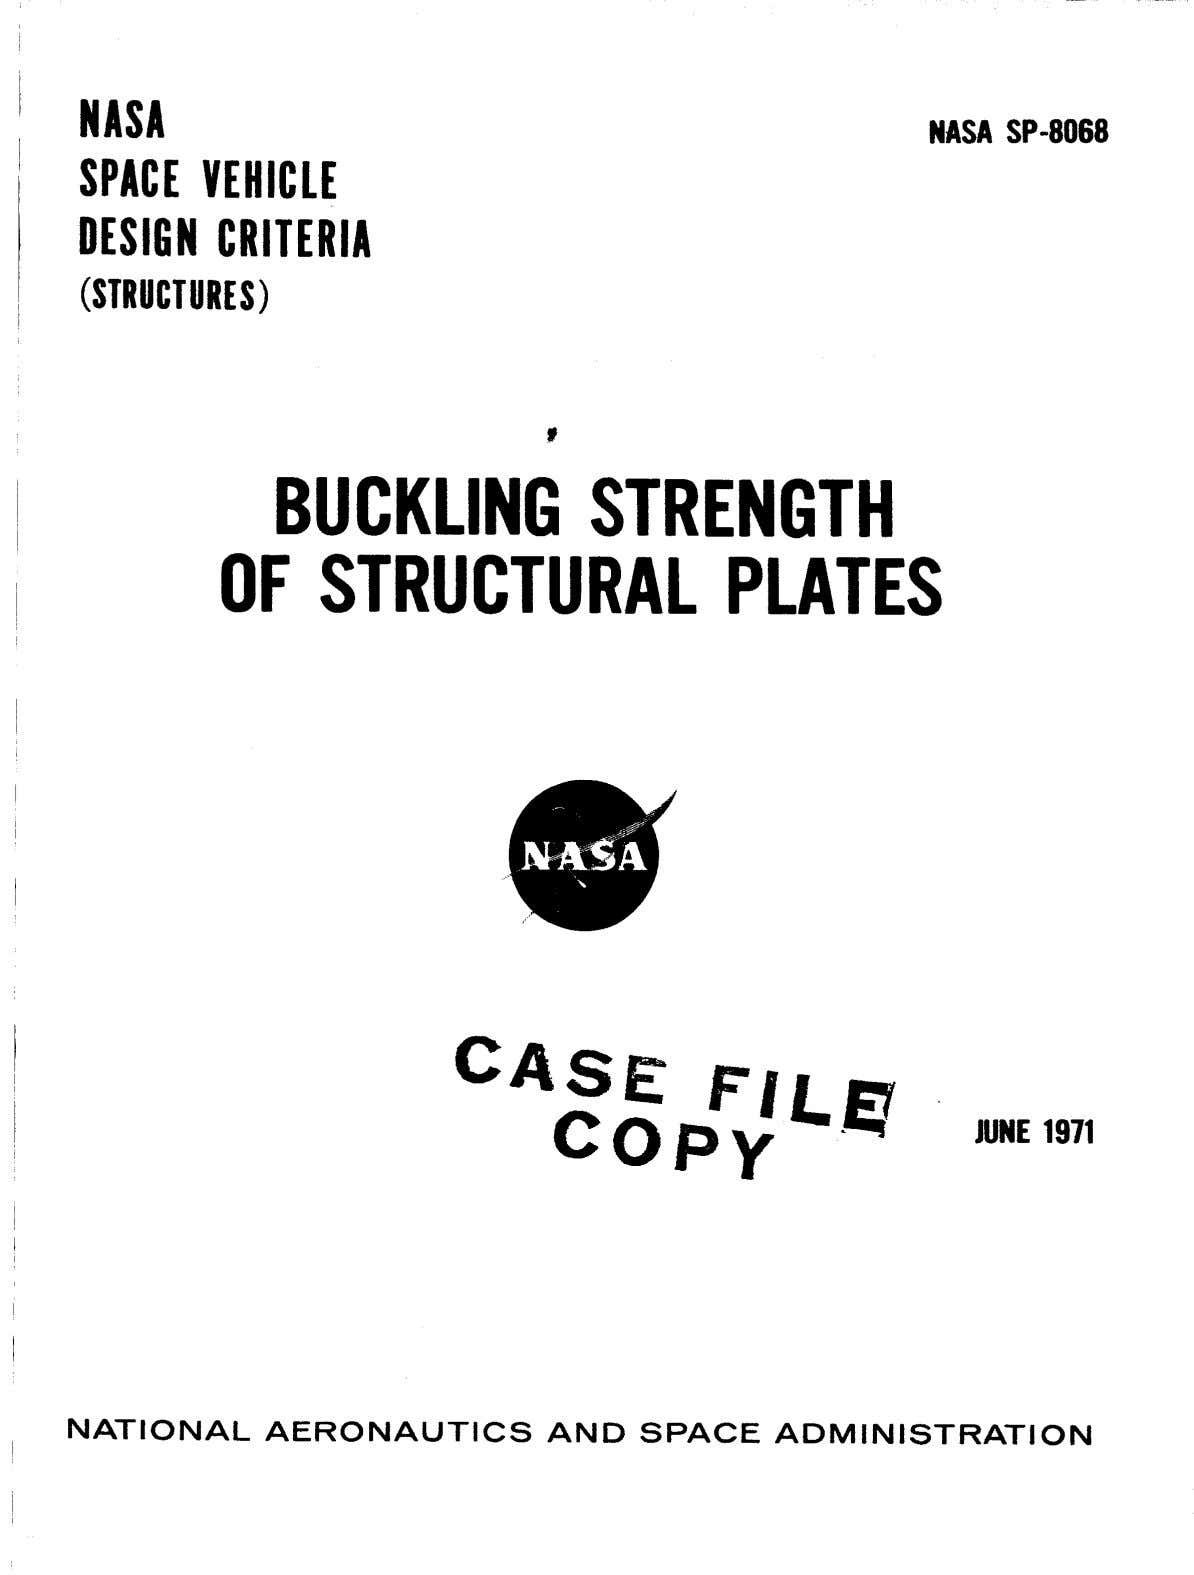 NASA SPACE VEHICLE DESICN CRITERIA NASA SP-8068 (STRUCTURES) t BUCKLING STRENGTH OF STRUCTURAL PLATES JUNE